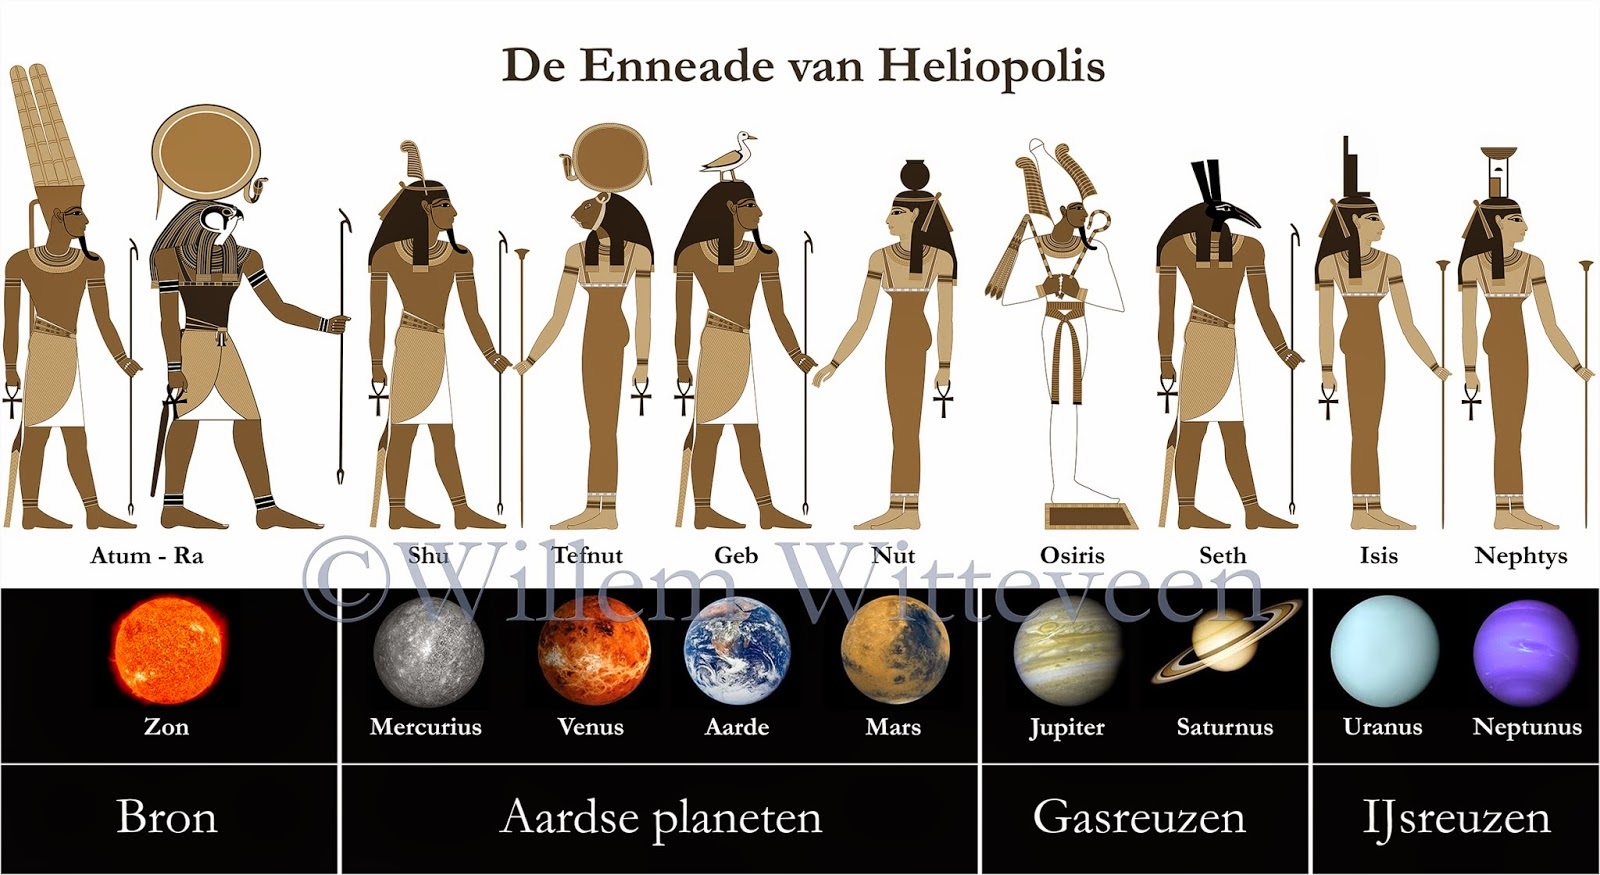 Ancient Egyptian Connections: The Ennead of Heliopolis